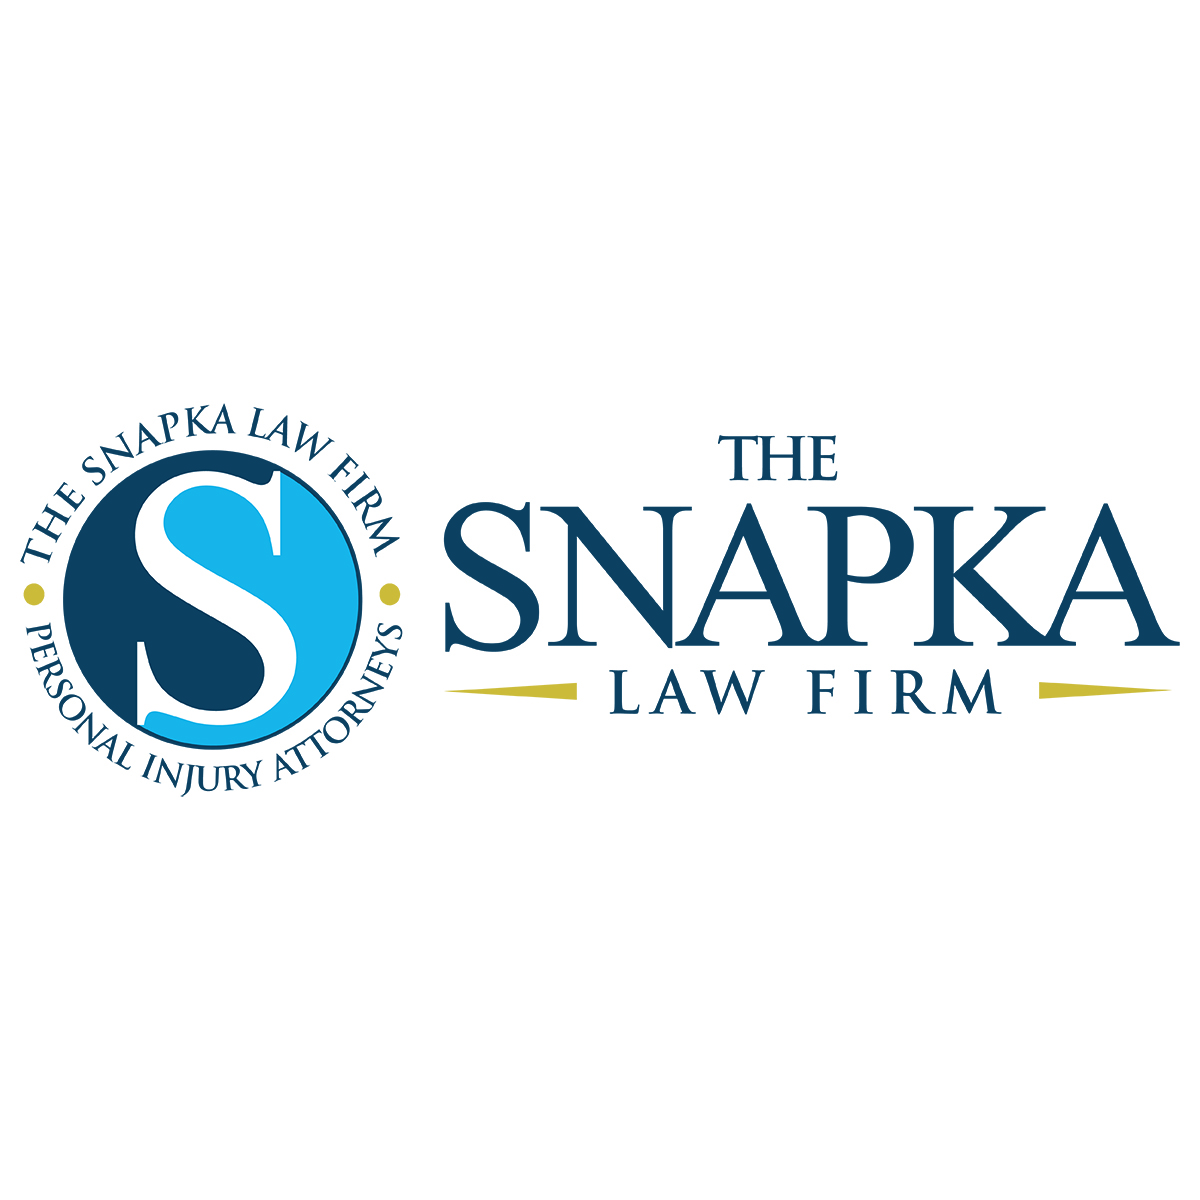 Corpus Christi Based Medical Malpractice Lawyers, Snapka Law Firm Utilizes Zoom To Handle Cases Across Texas